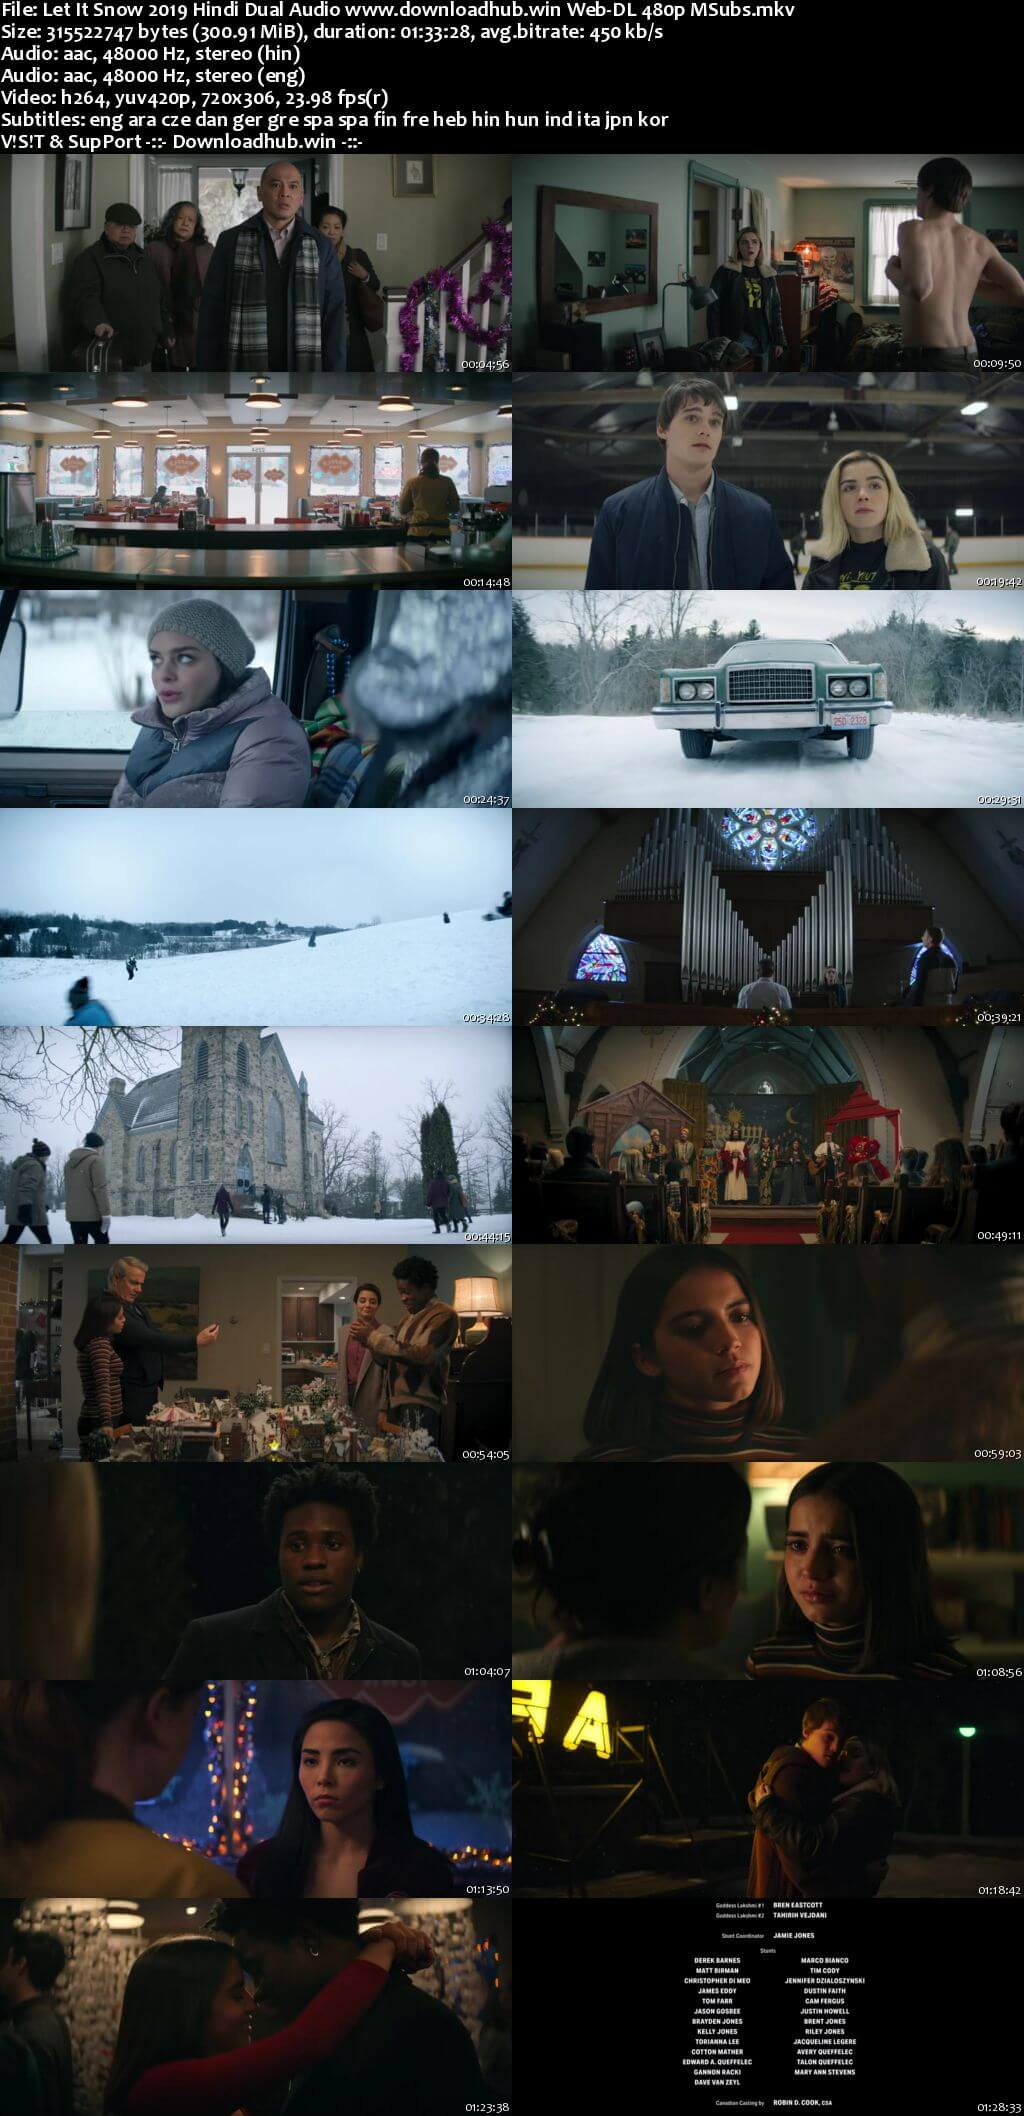 Let It Snow 2019 Hindi Dual Audio 300MB Web-DL 480p MSubs